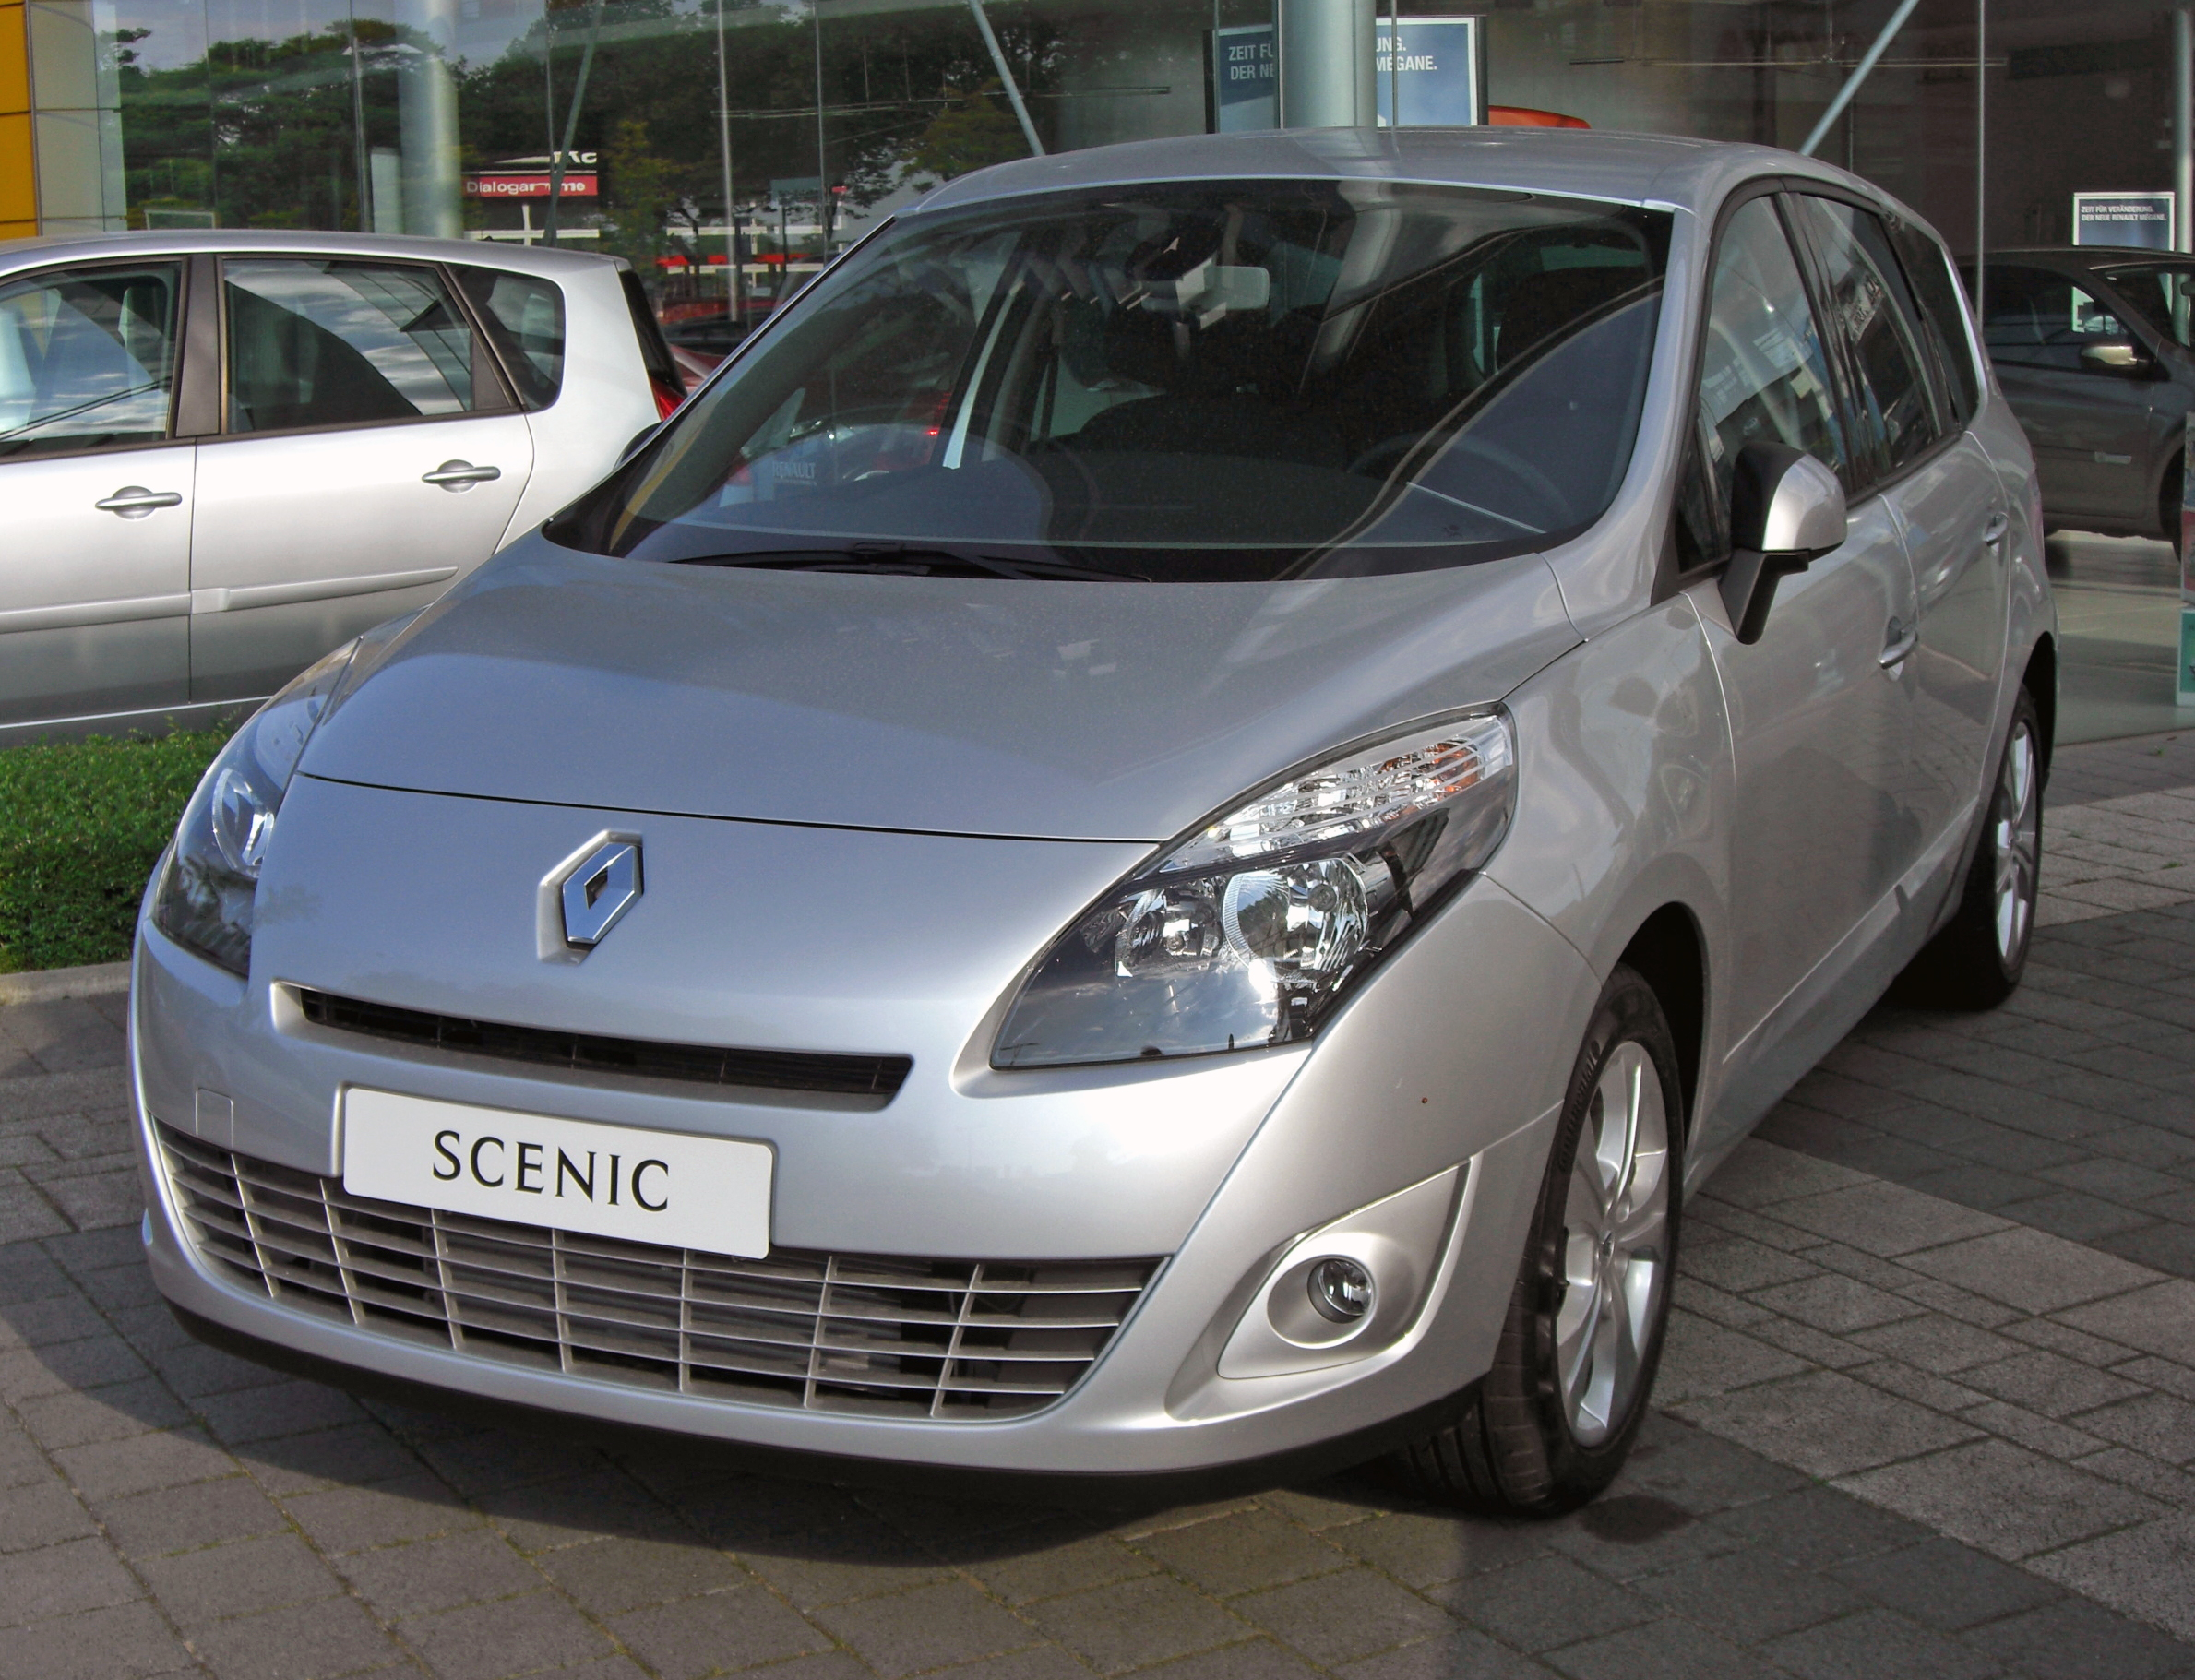 2009 renault scenic iii pictures information and specs. Black Bedroom Furniture Sets. Home Design Ideas